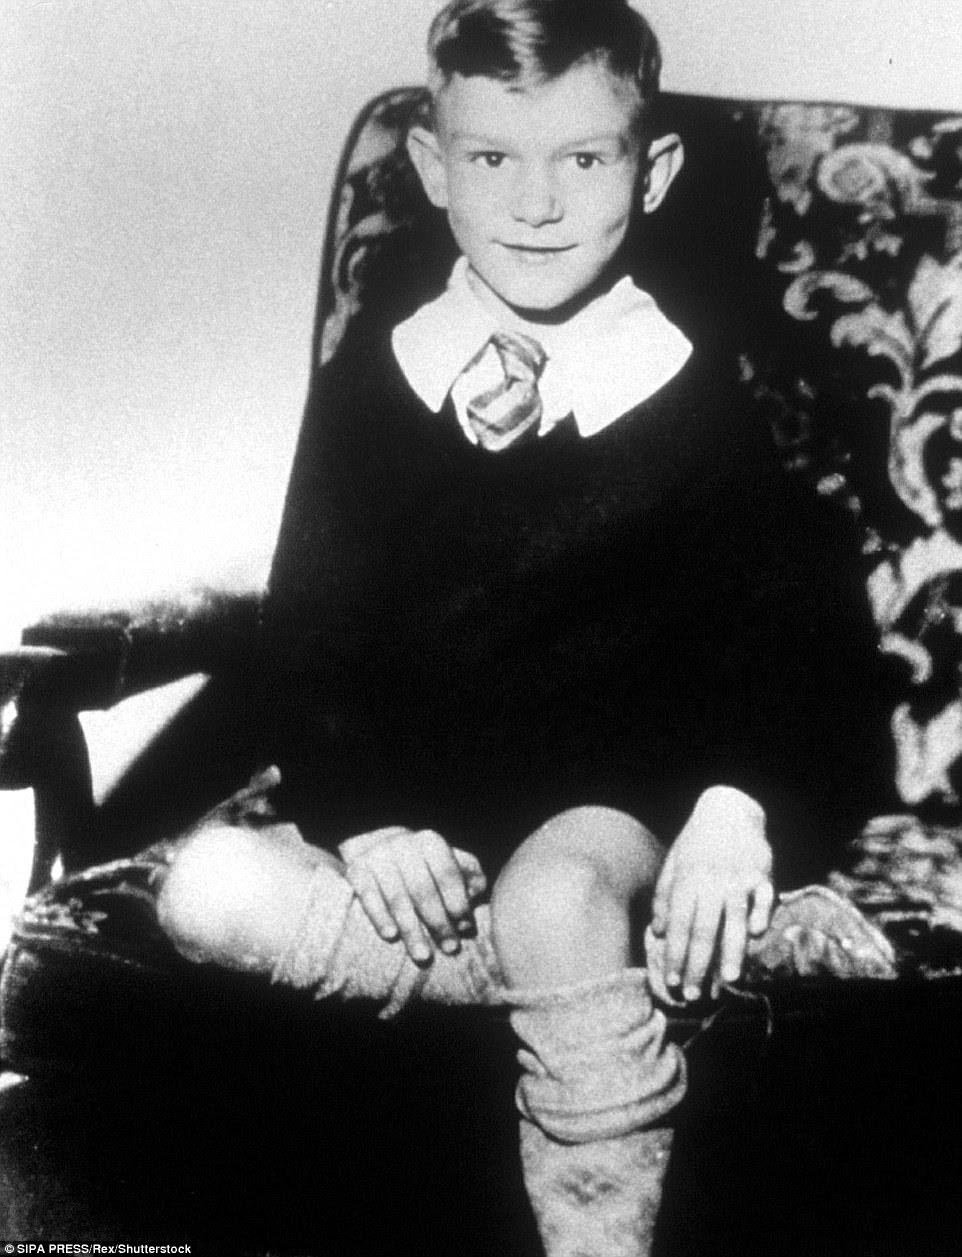 Hefner grew up in Chicago, Illinois, in a prohibitionist household with two Methodist parents who he said never showed affection towards one another. He is pictured as a young boy some time in the late 1920s, early 1930s